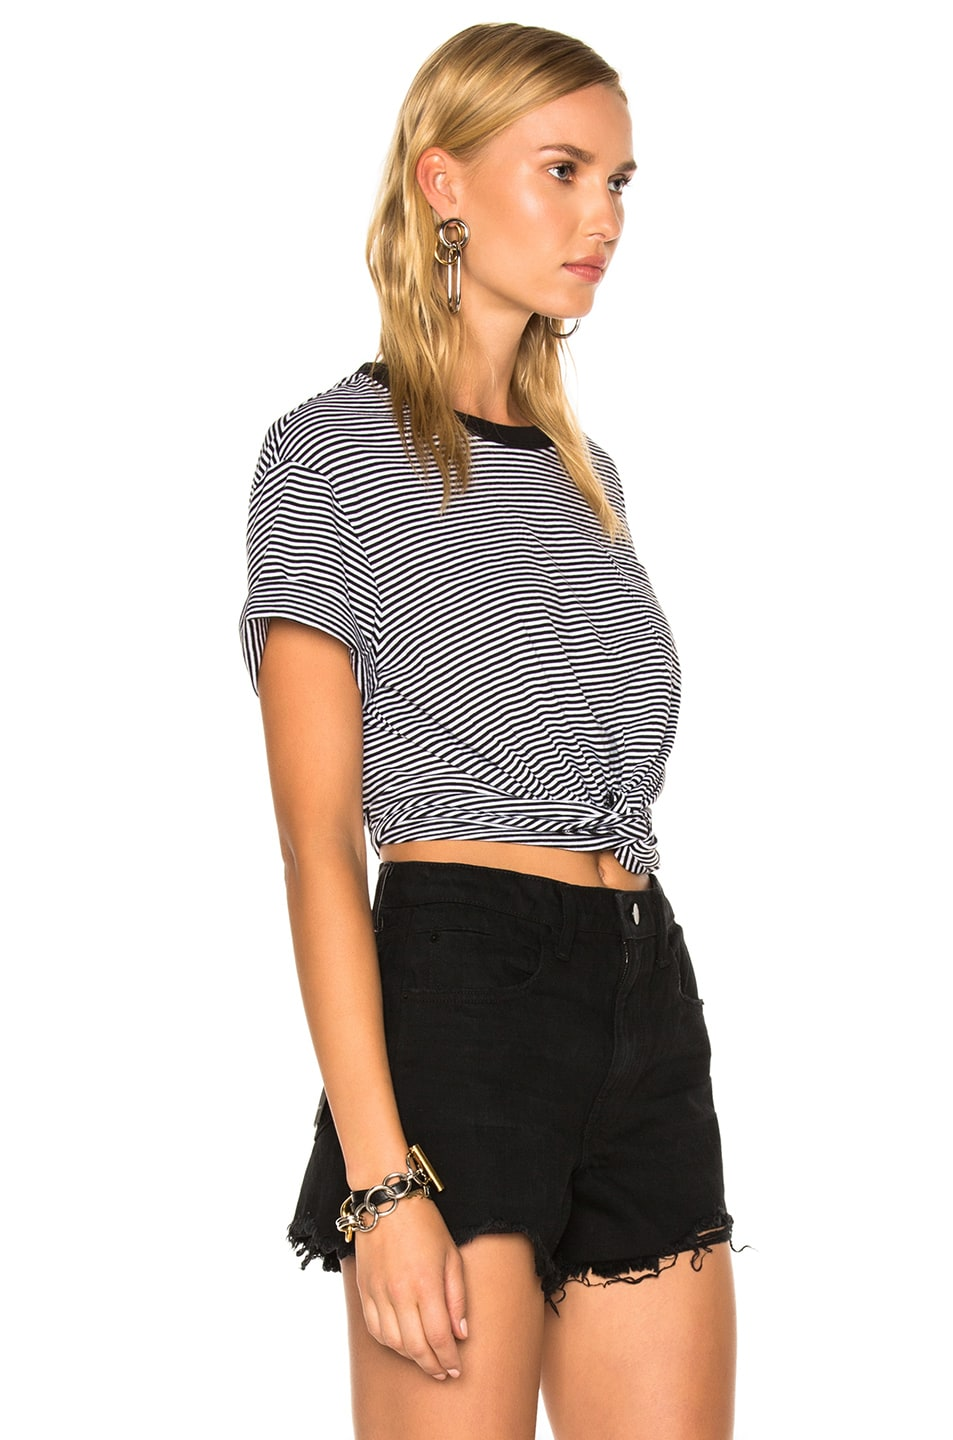 Image 3 of T by Alexander Wang Cotton Jersey Twist Front Short Sleeve Tee in Black & White